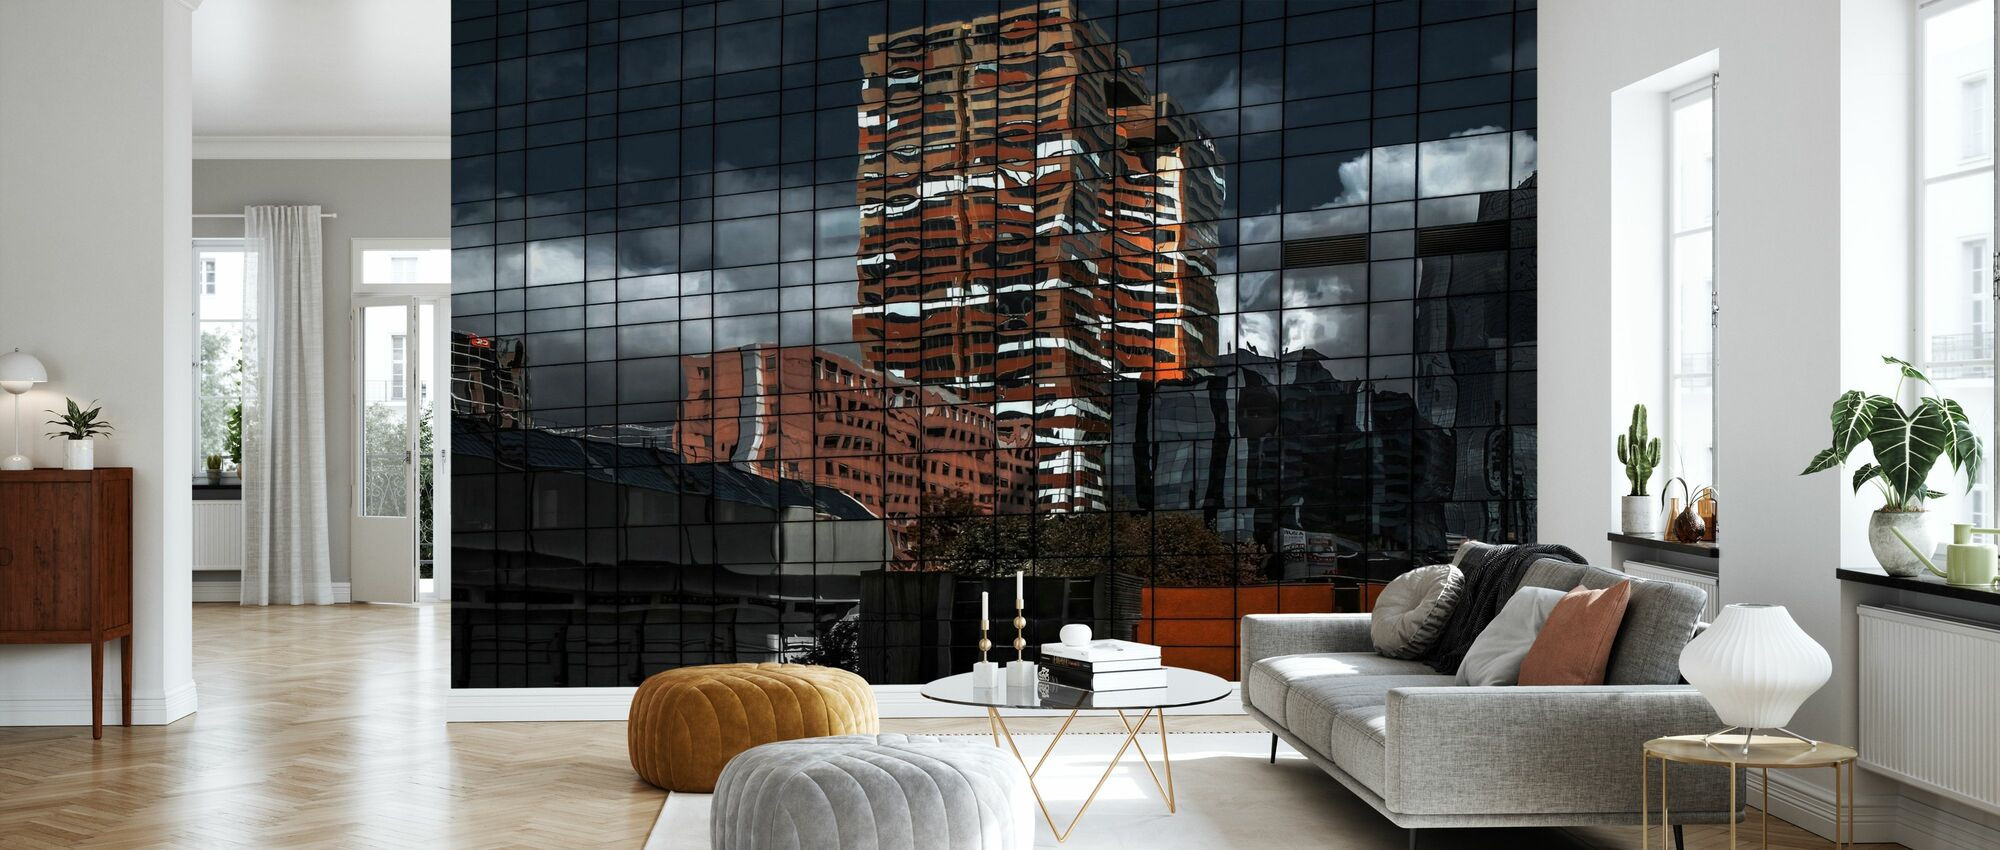 Puzzle Reflection - Wallpaper - Living Room